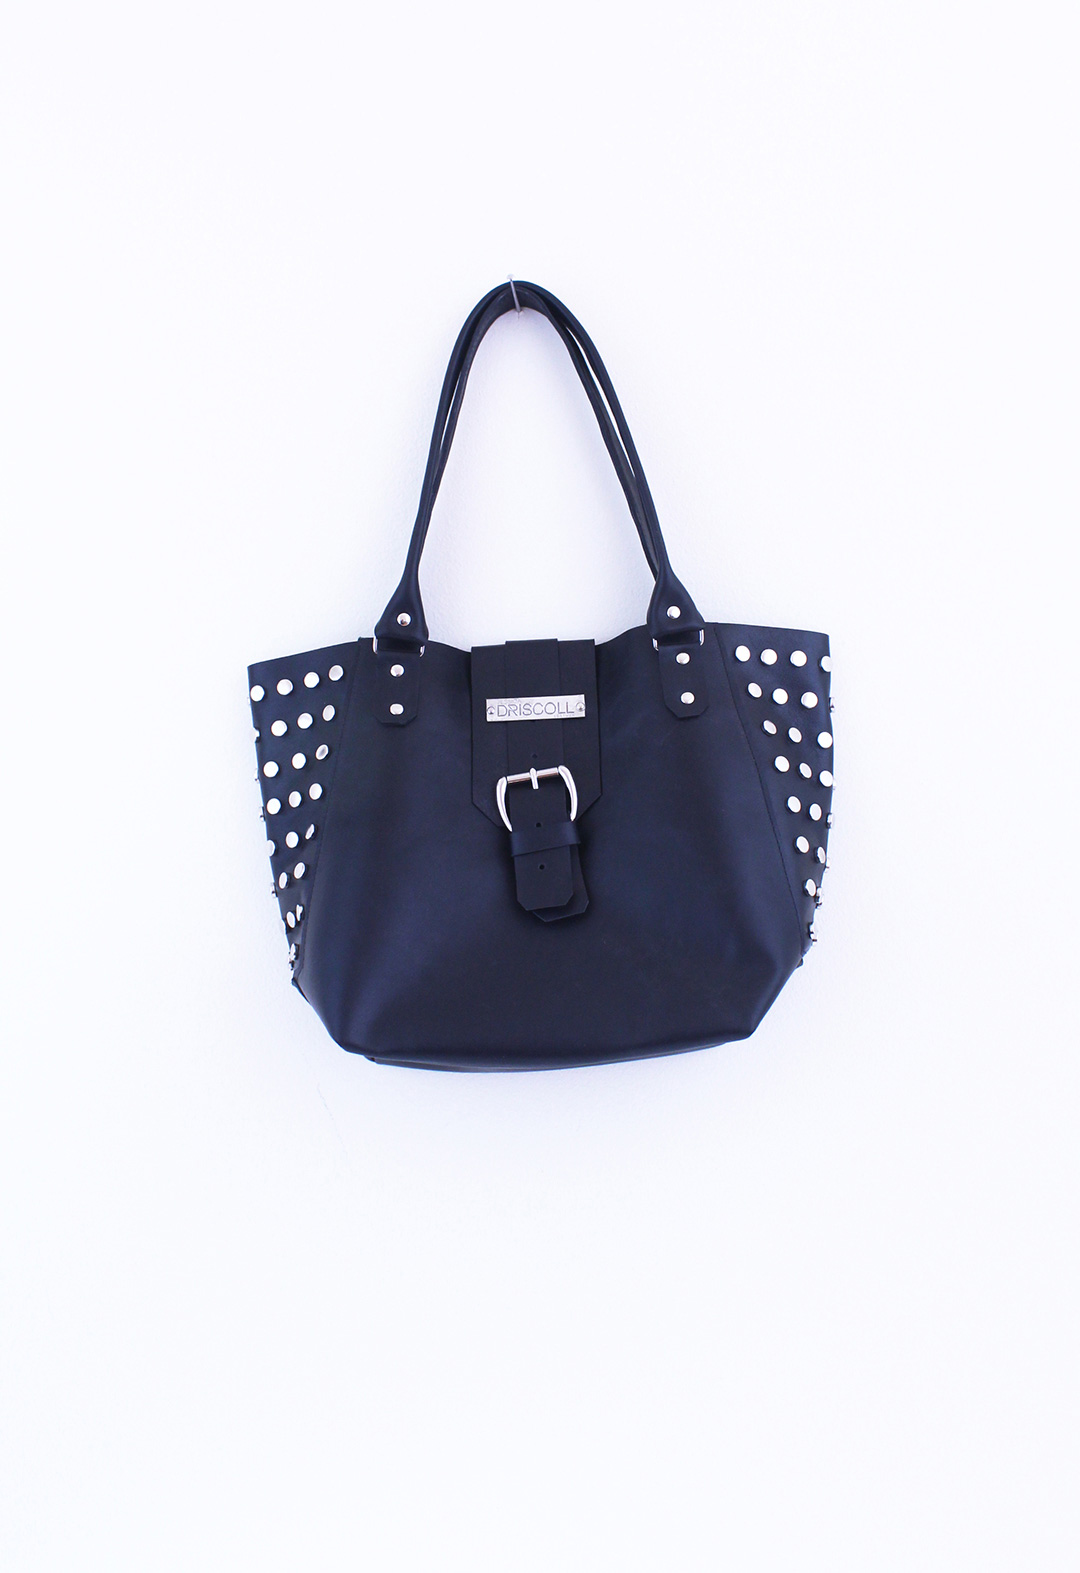 Fashion Design, Image of black handbag with silver hardware and studs on white background